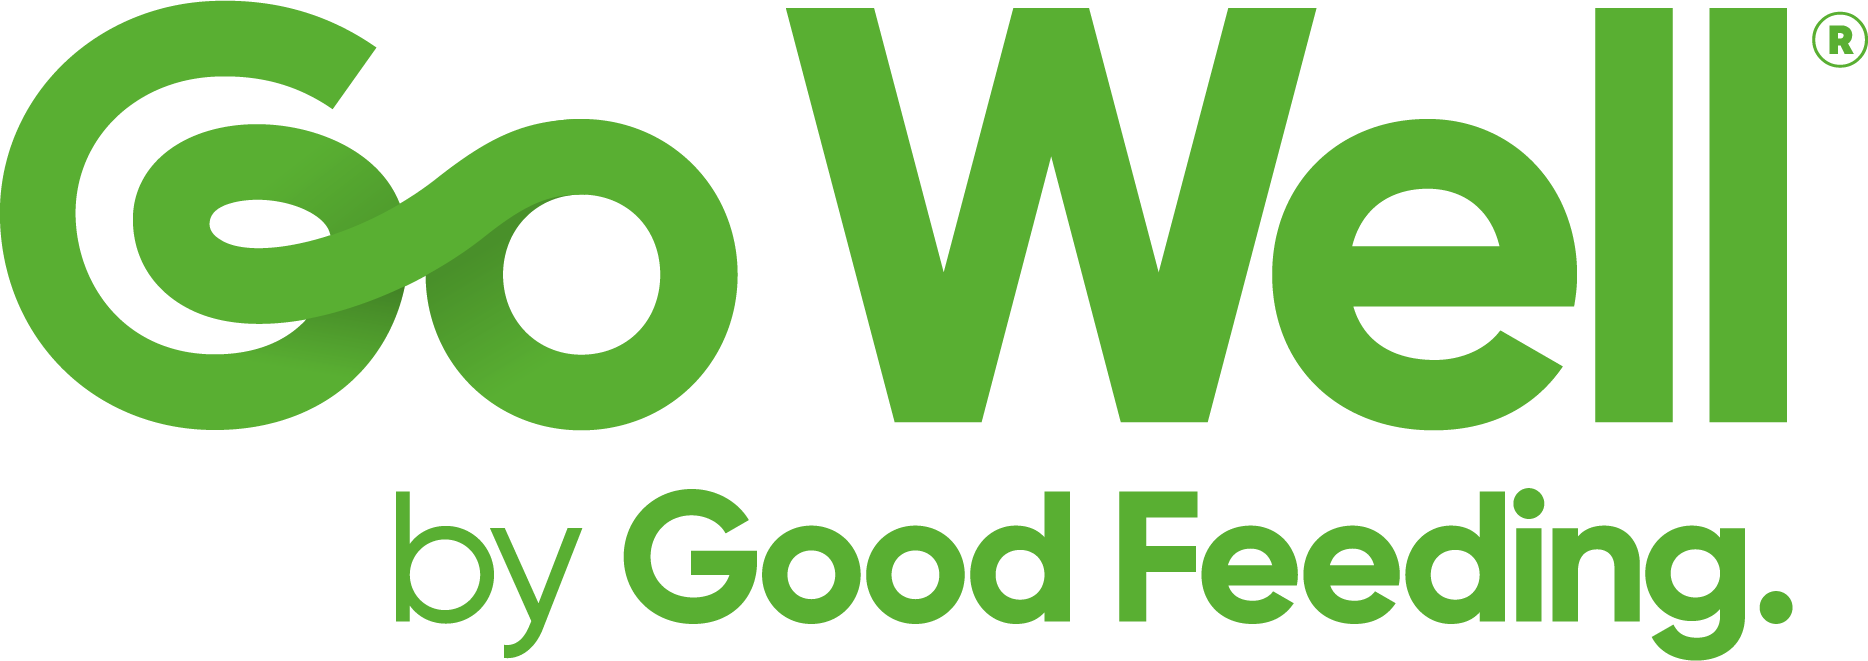 Go Well by Good Feeding Logo RGB - Green (R)-1